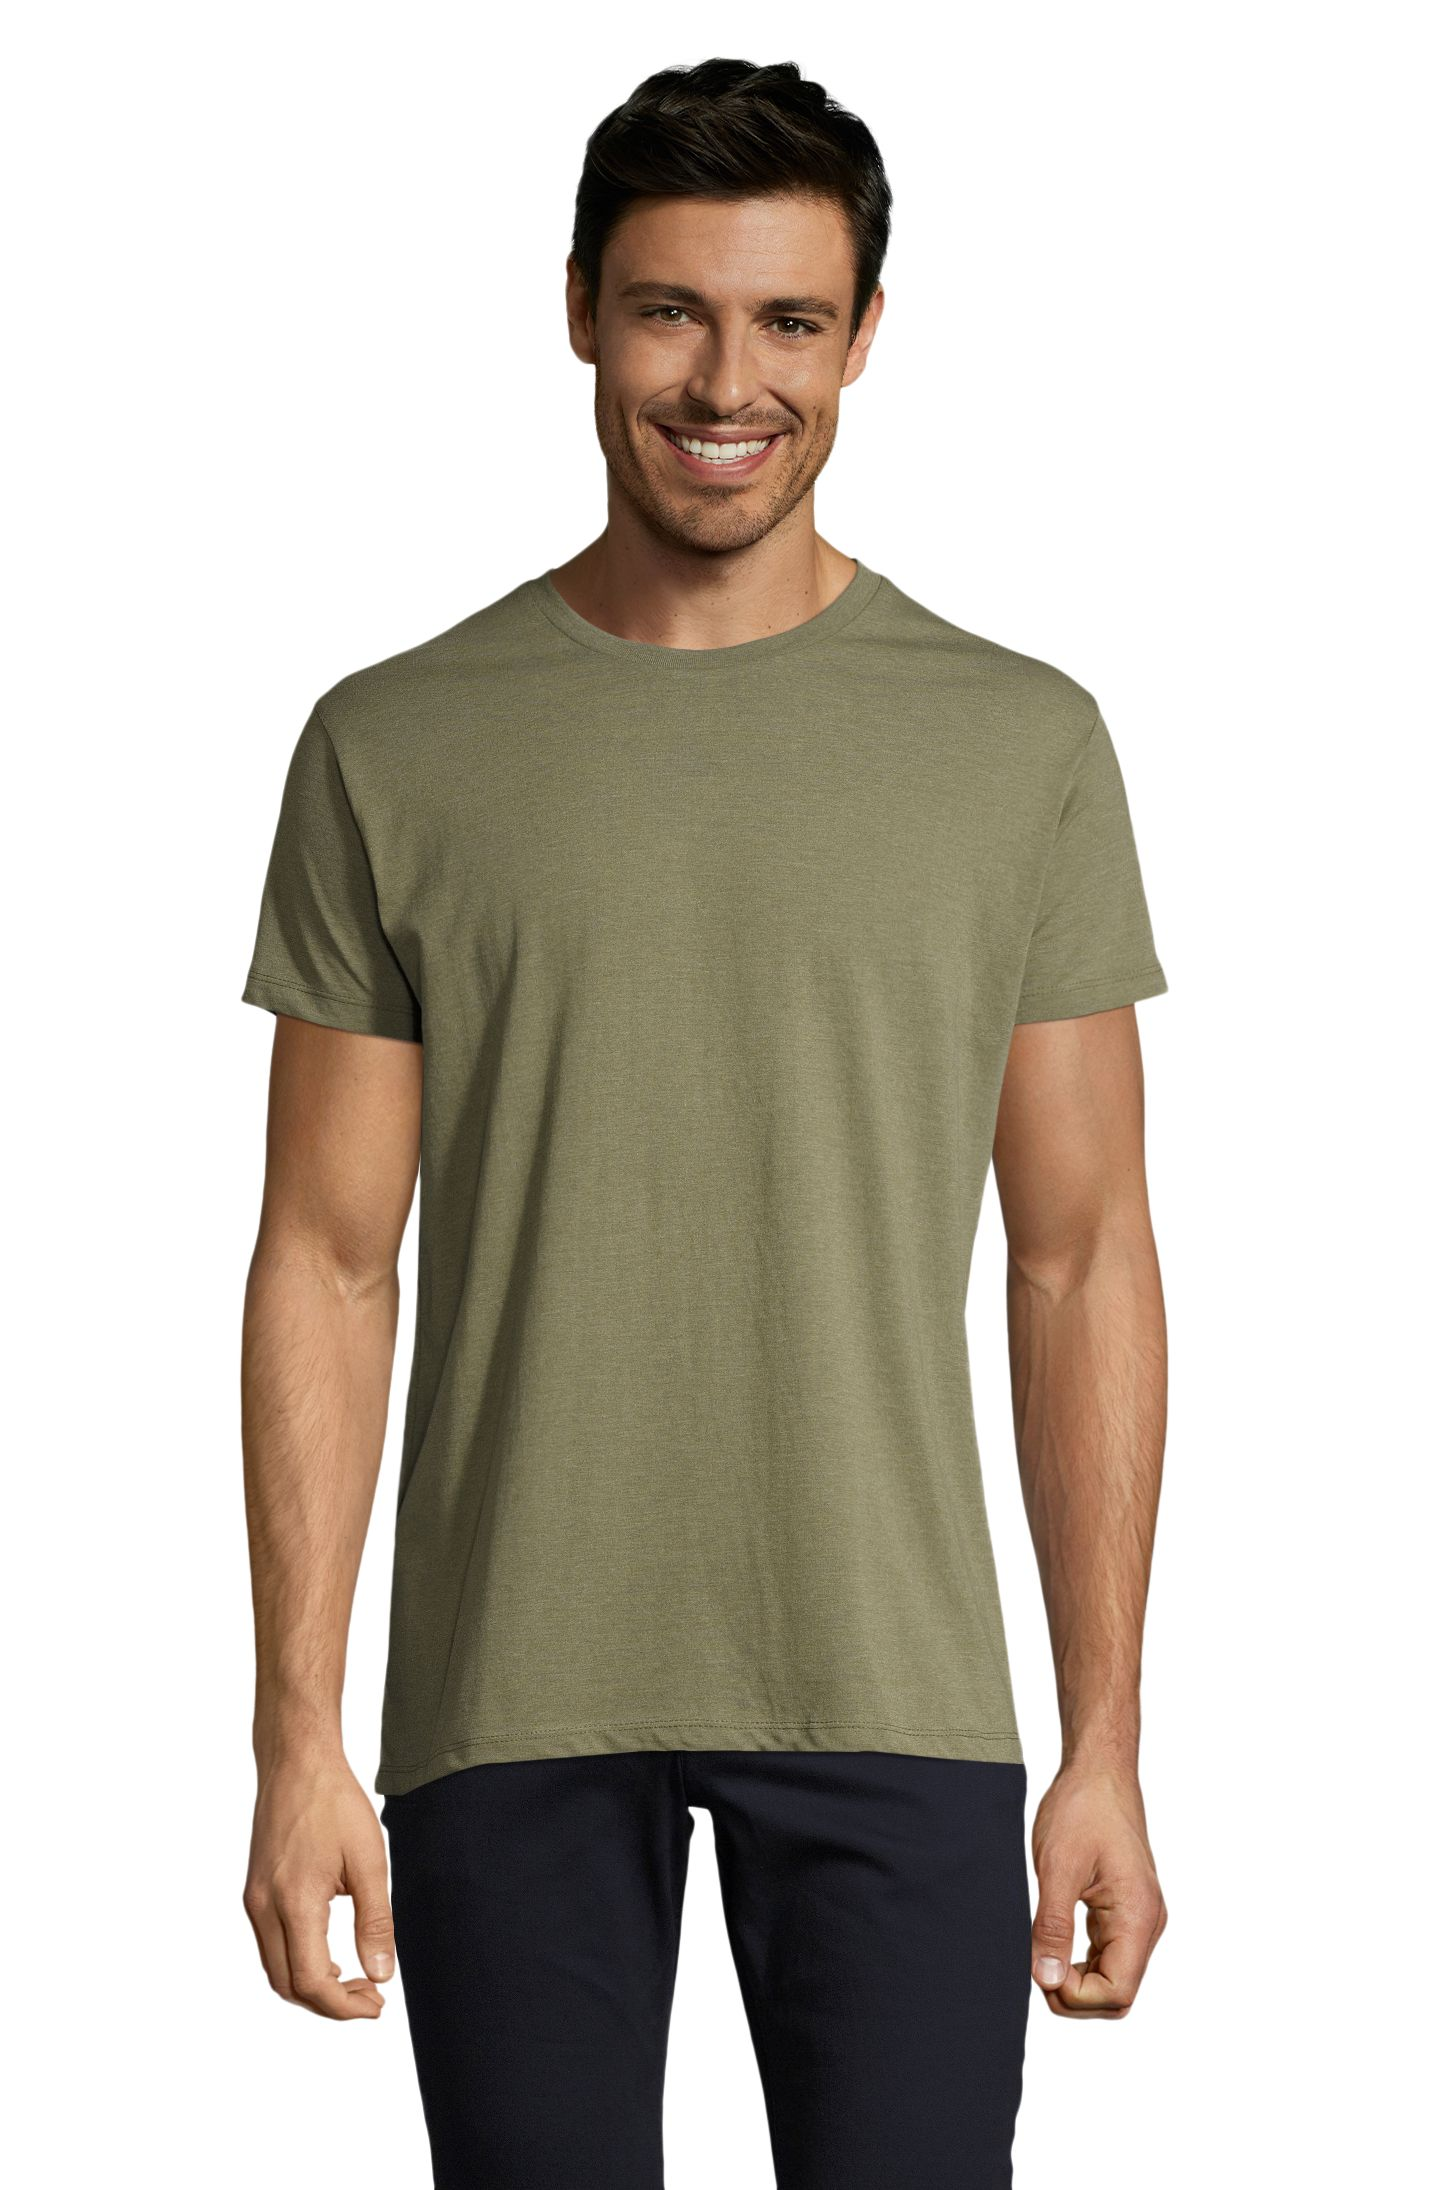 288 - Heather khaki